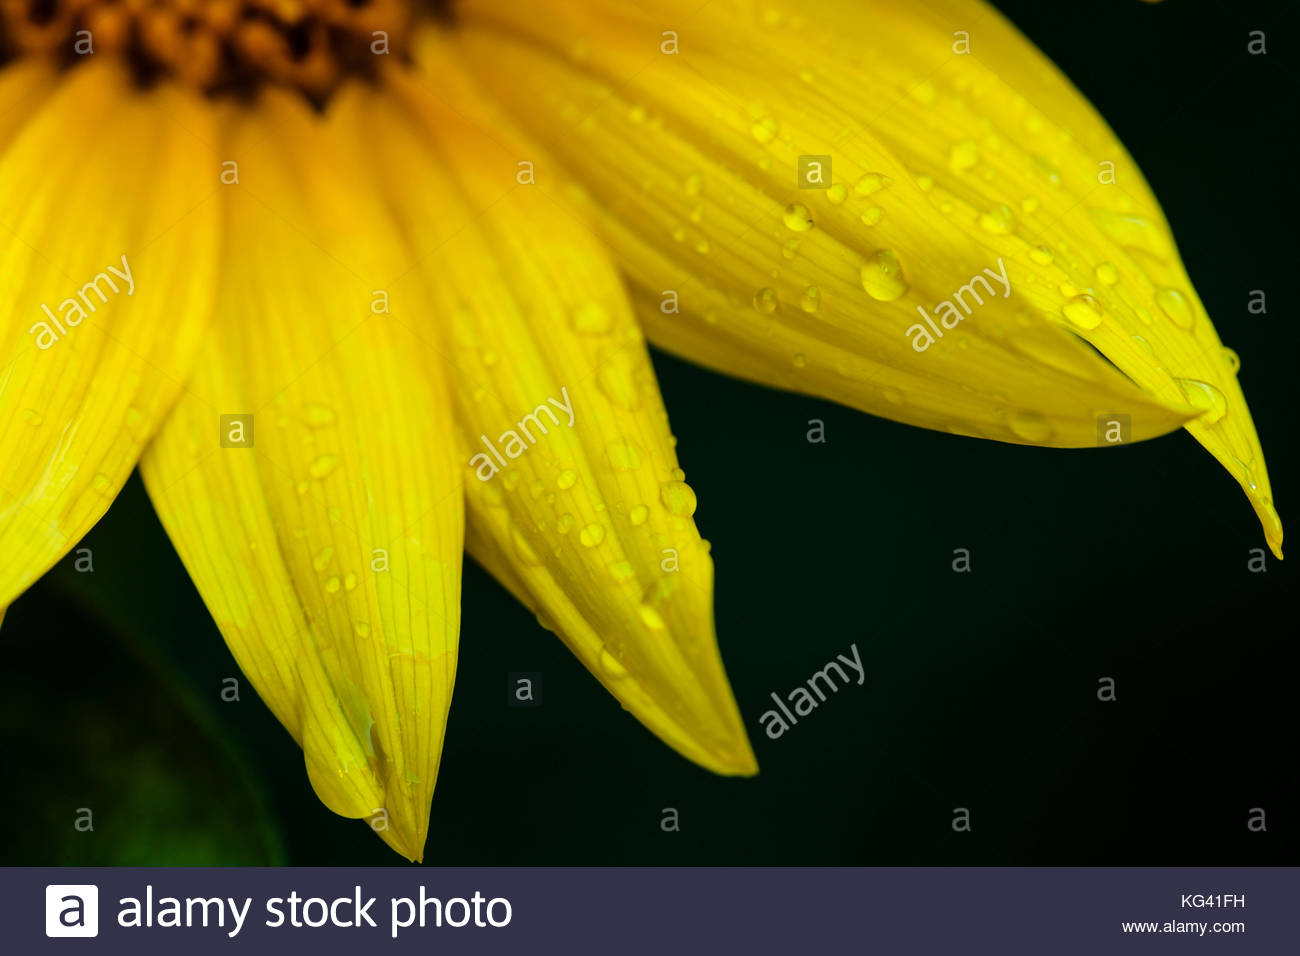 Raindrops cling to the petals of the Common Sunflower following an afternoon shower in mid-July - Stock Image